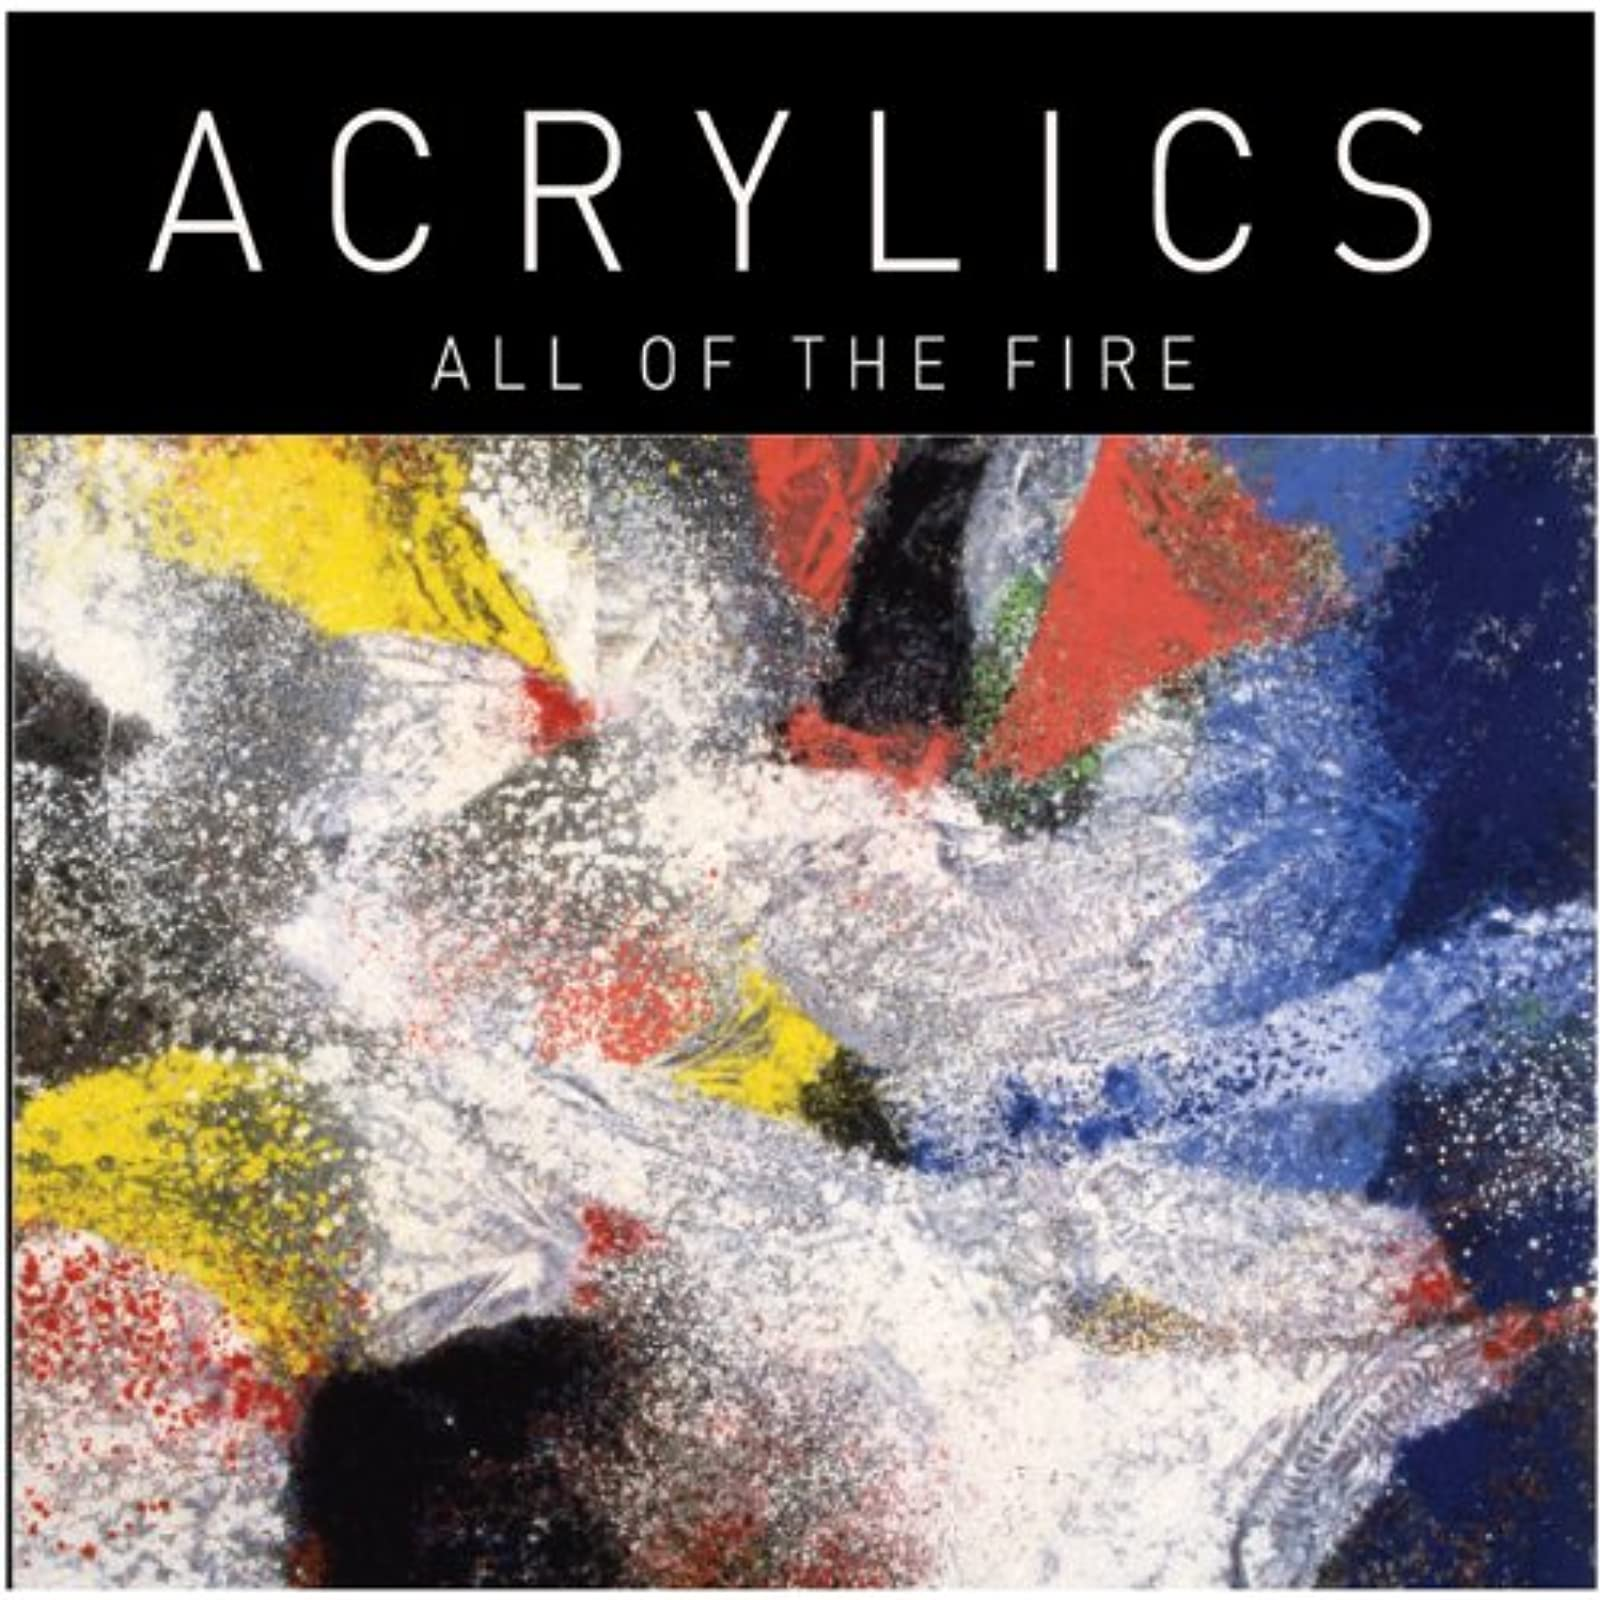 All Of The Fire On Vinyl Record By Acrylics